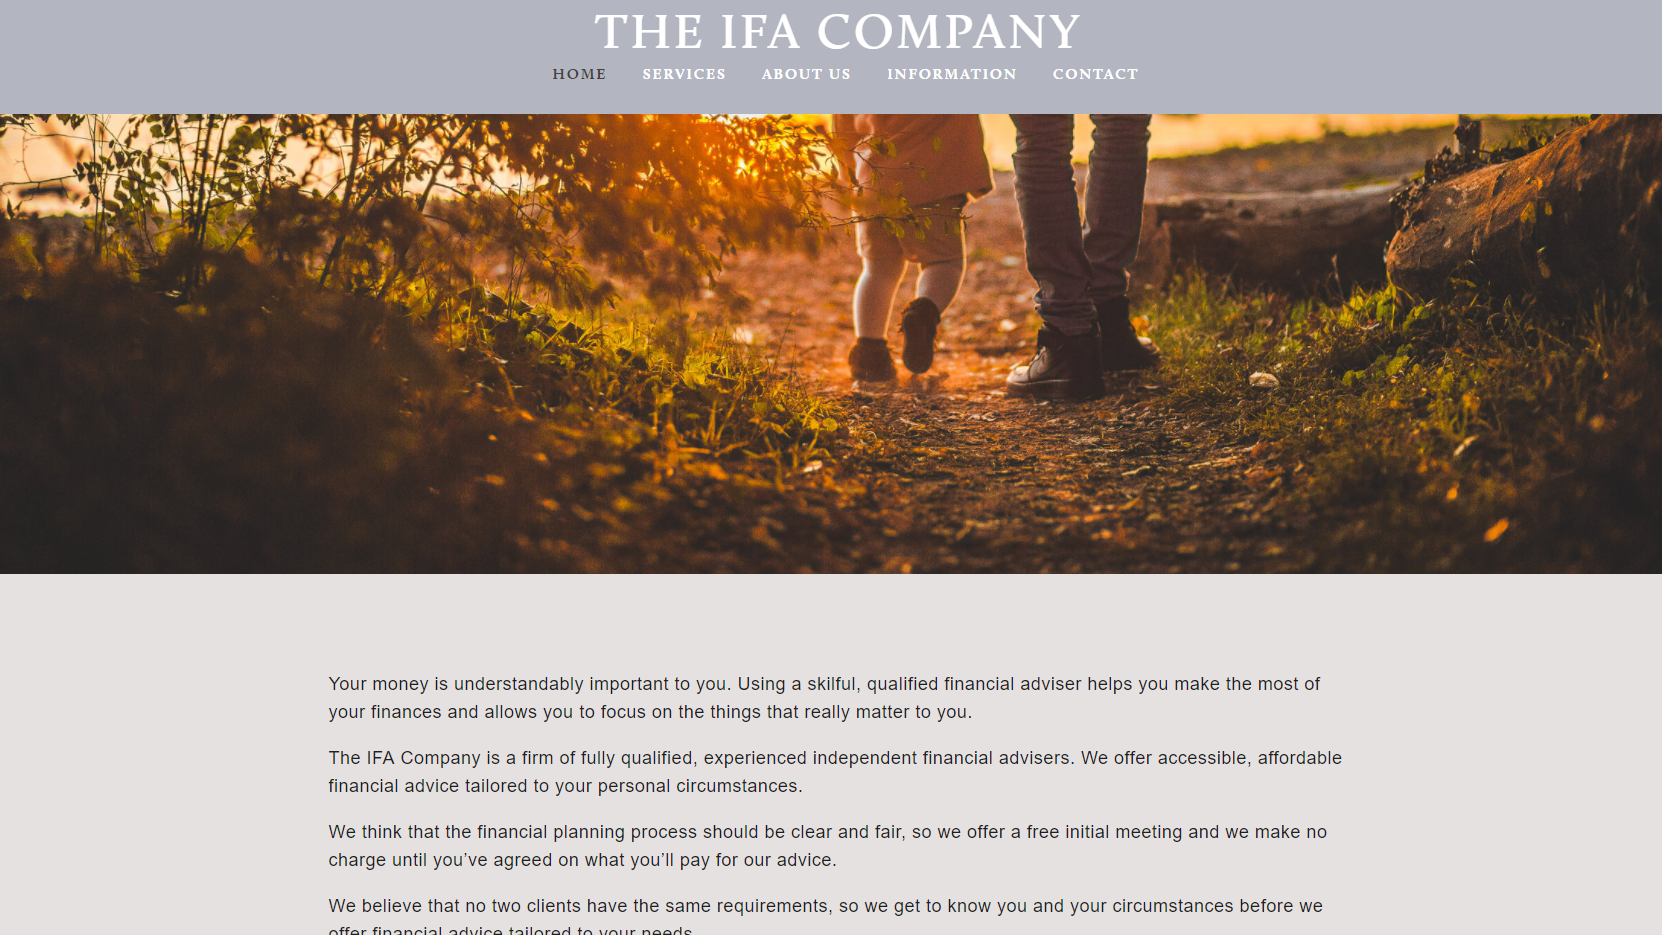 The IFA Company